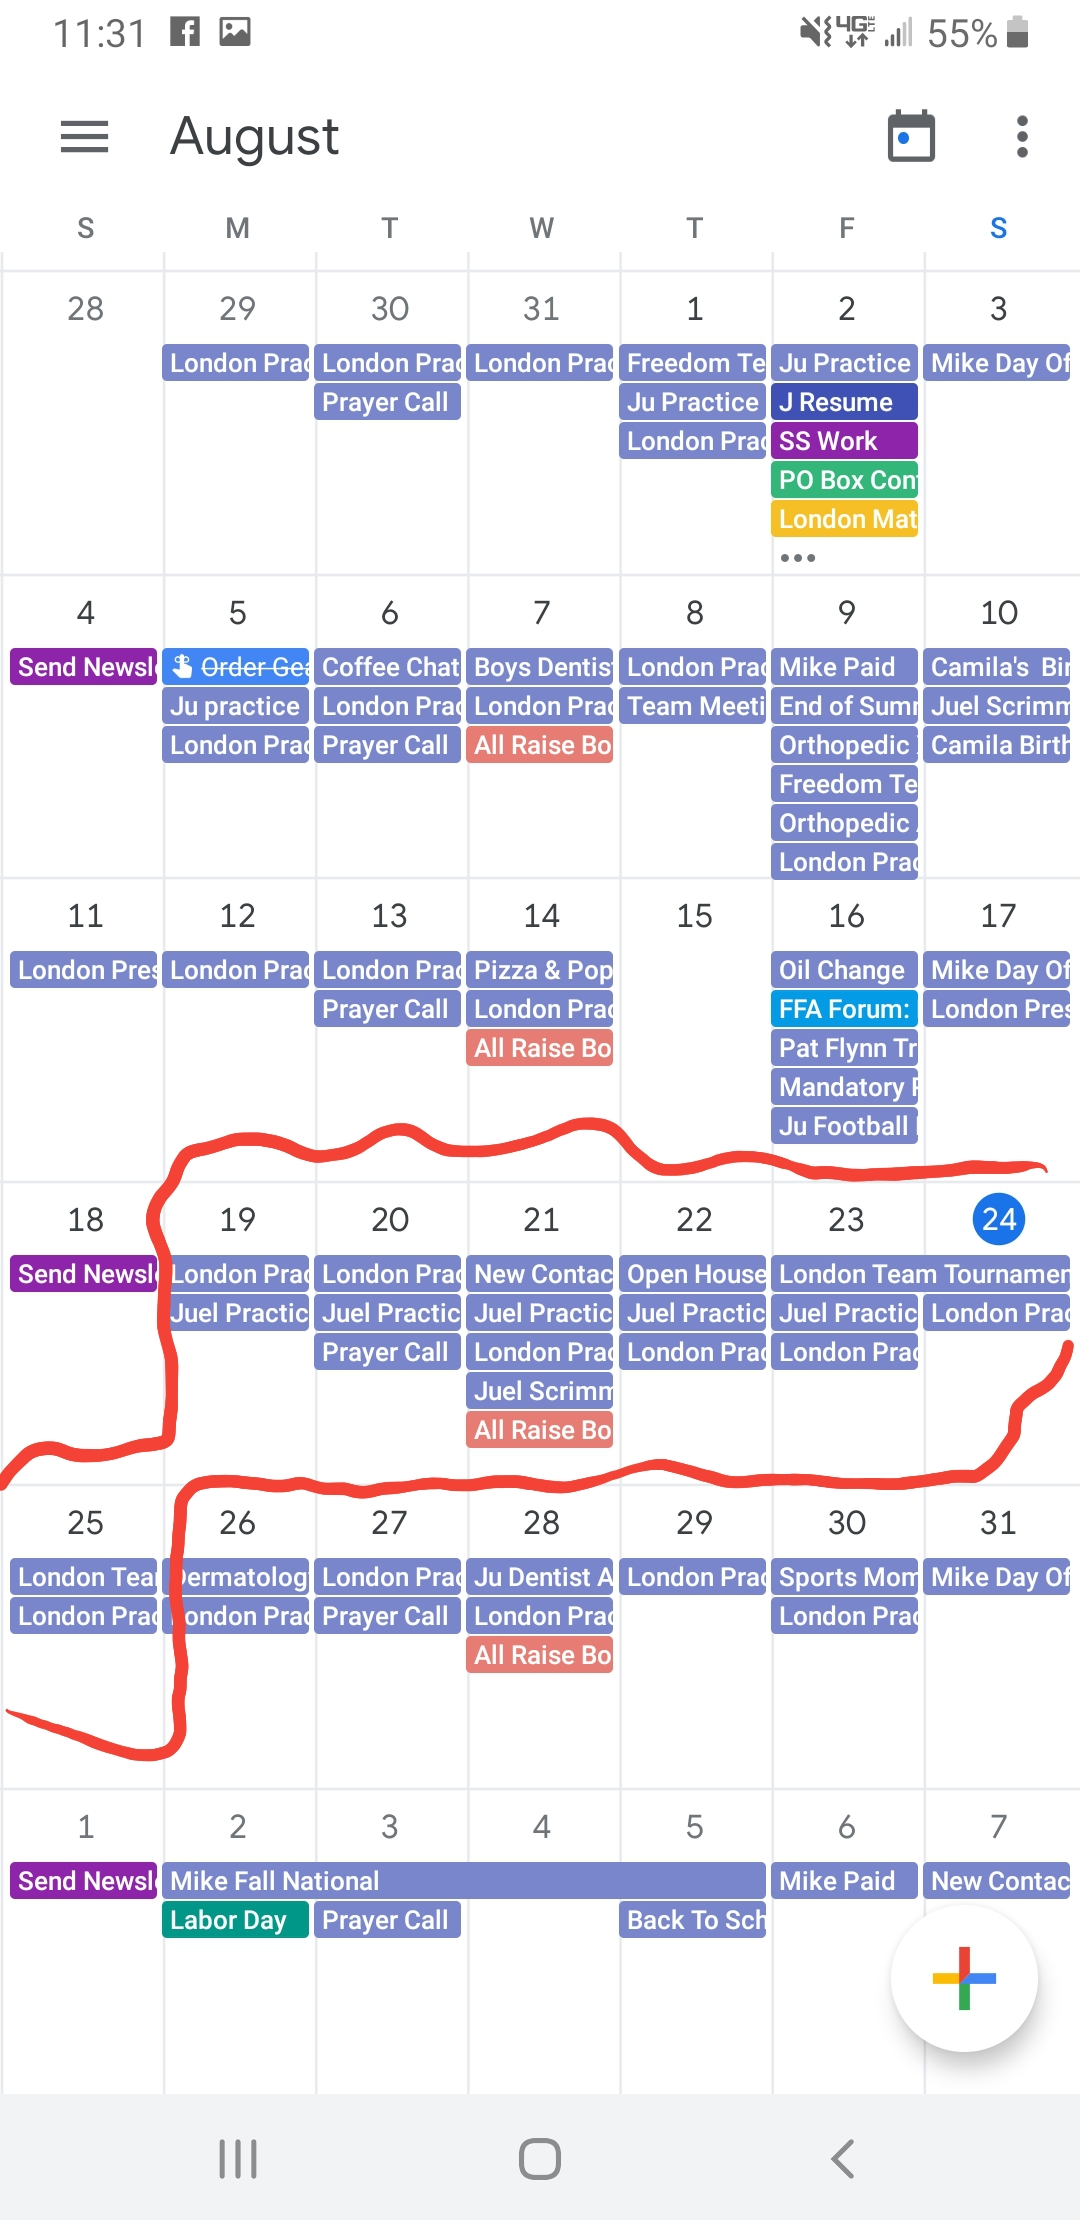 Here's my calendar - notice the packed week of football practices and our tournament weekend.